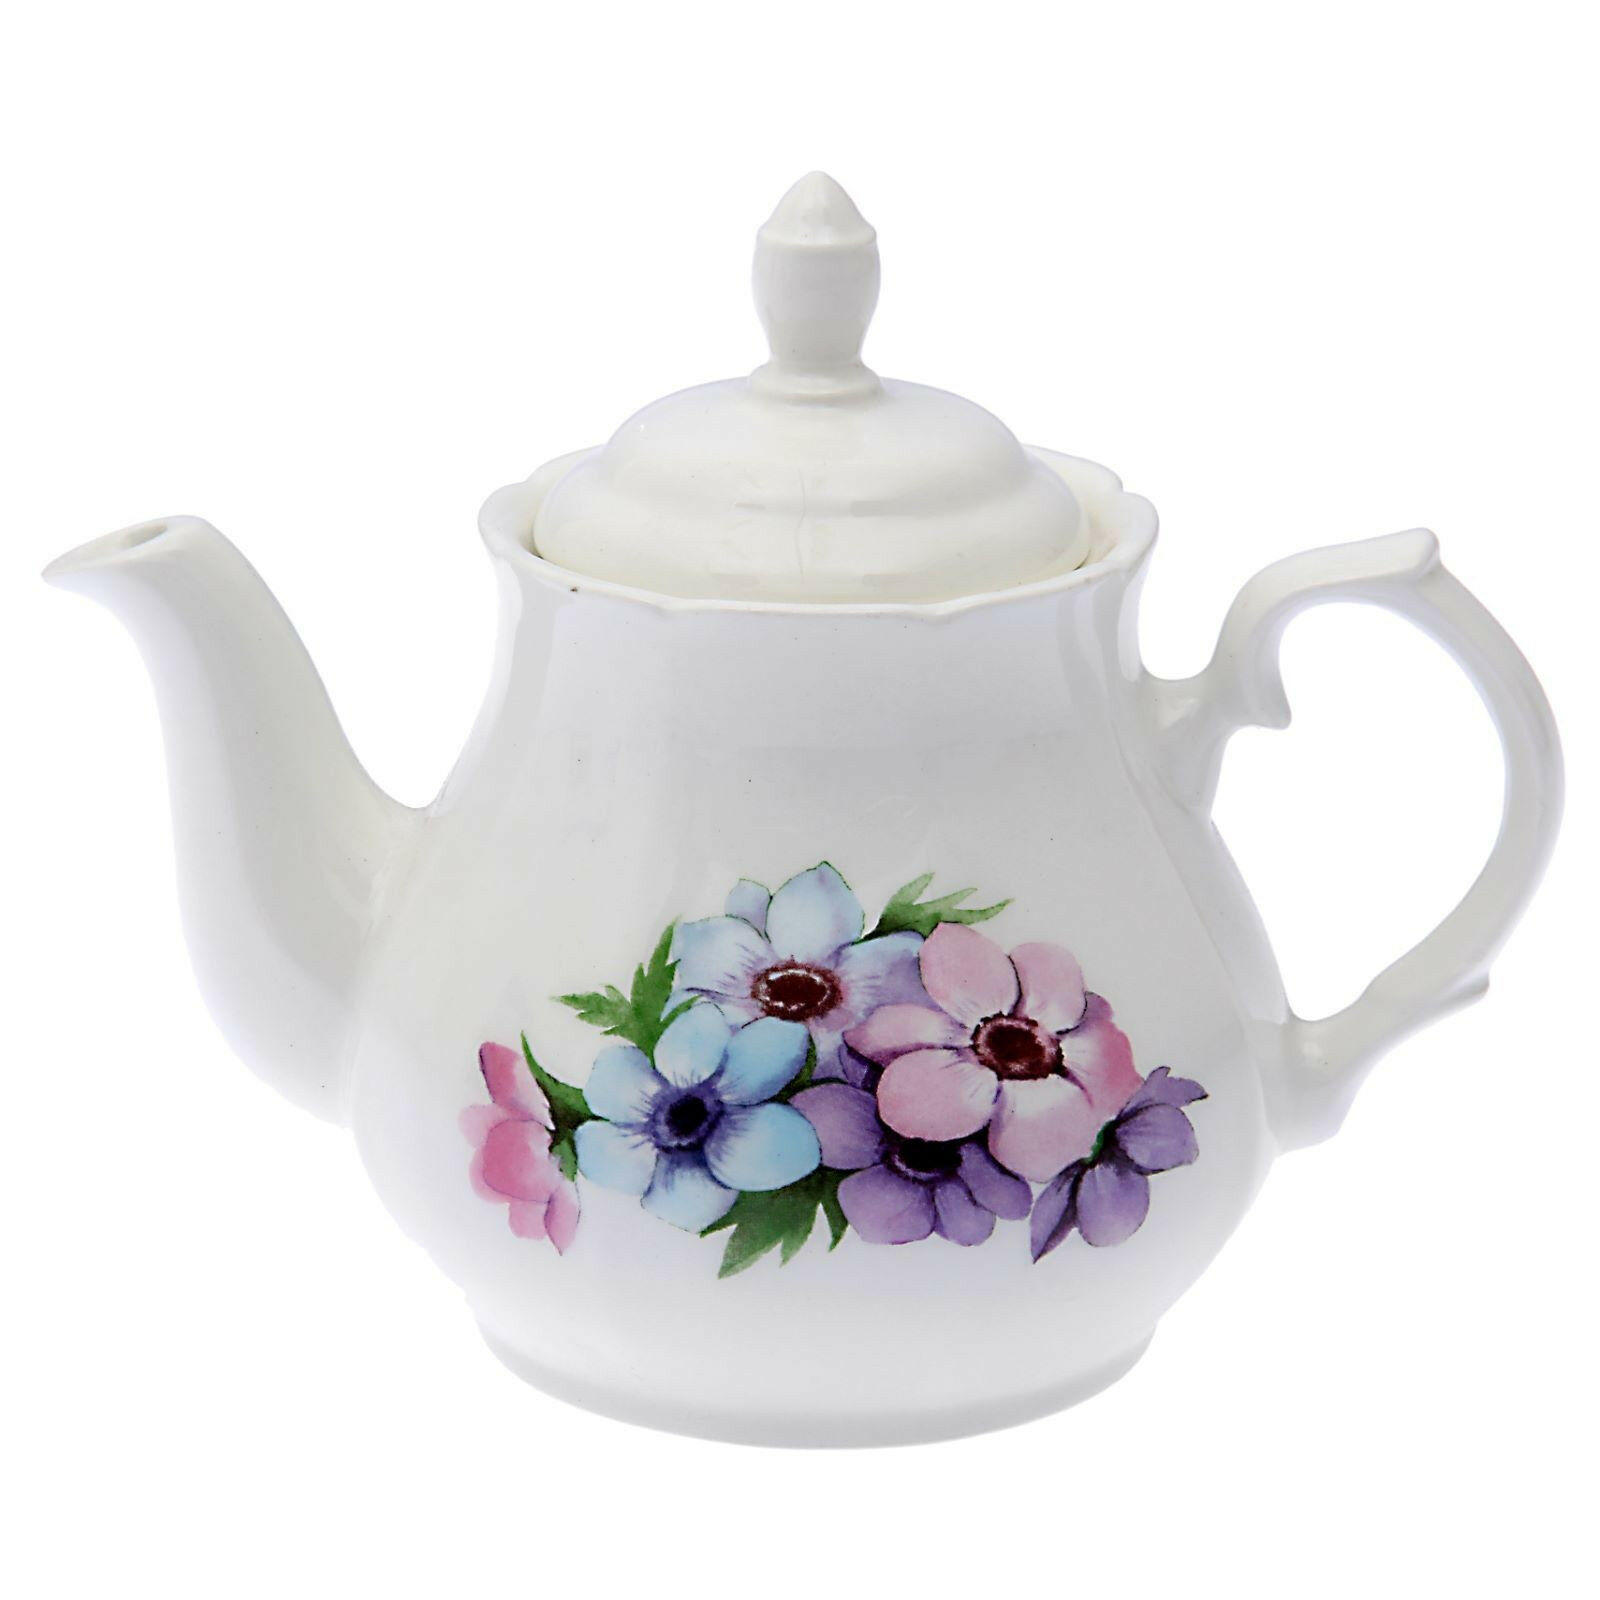 White Brewing Porcelain Teapot with Floral Decal. 33 Fl oz M